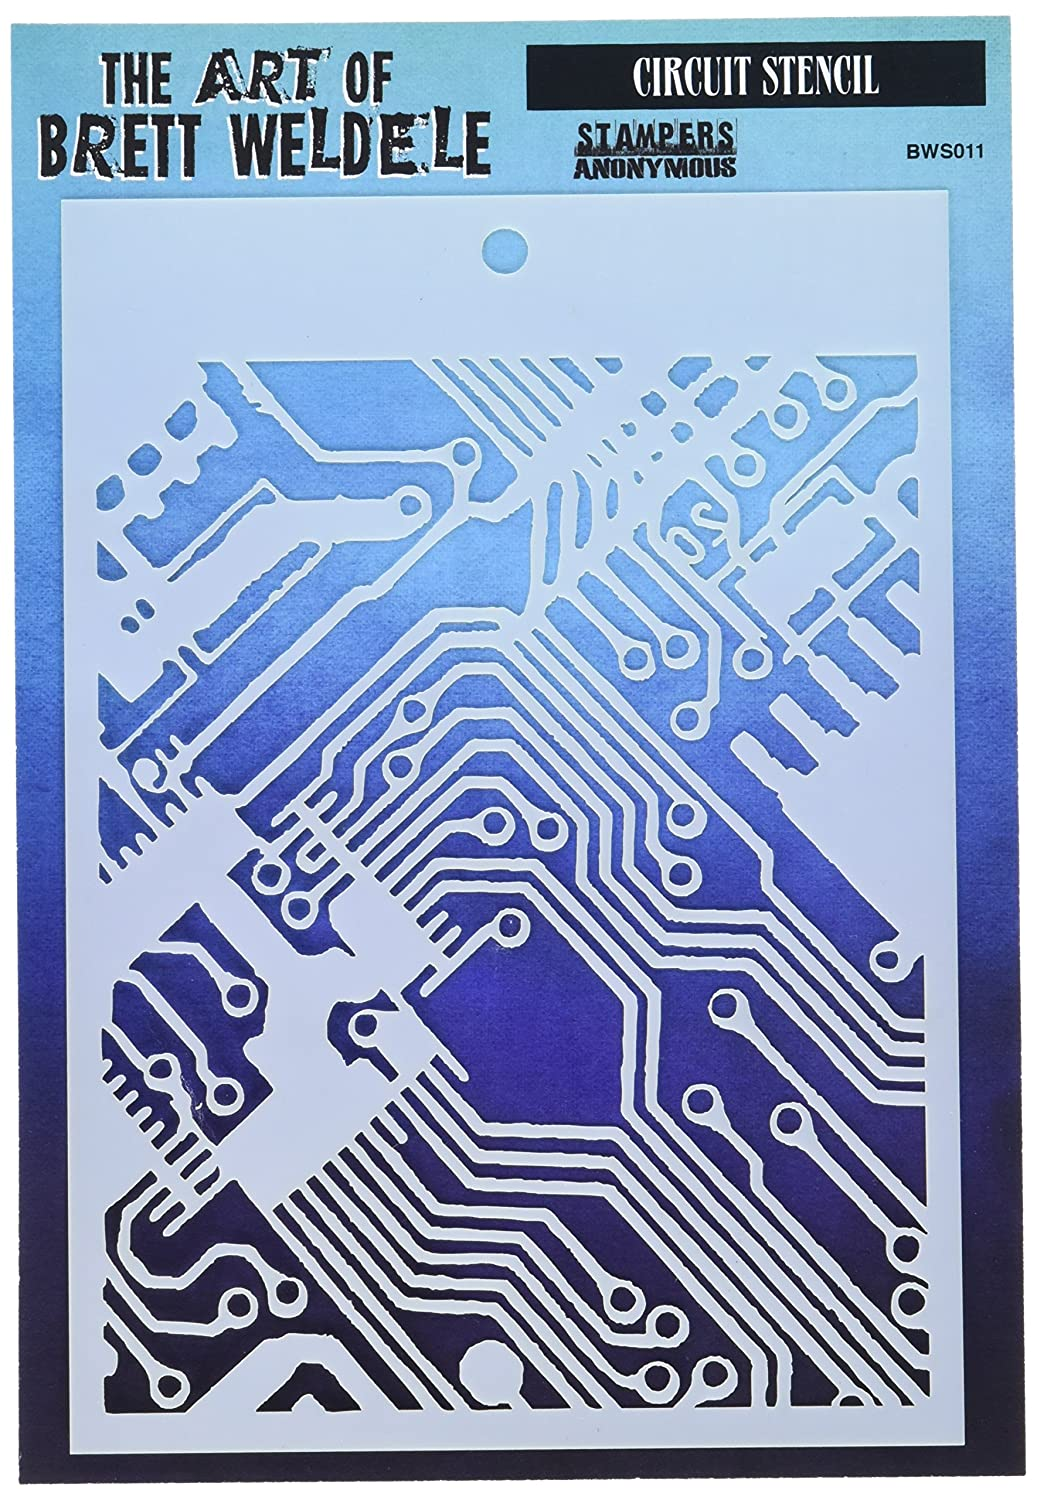 Multicoloured Acrylic Stampers Anonymous Brett Wedeled Stencils 6.5 x 4.5-inch Circuit 0.1 x 5.65 x 8.9 cm